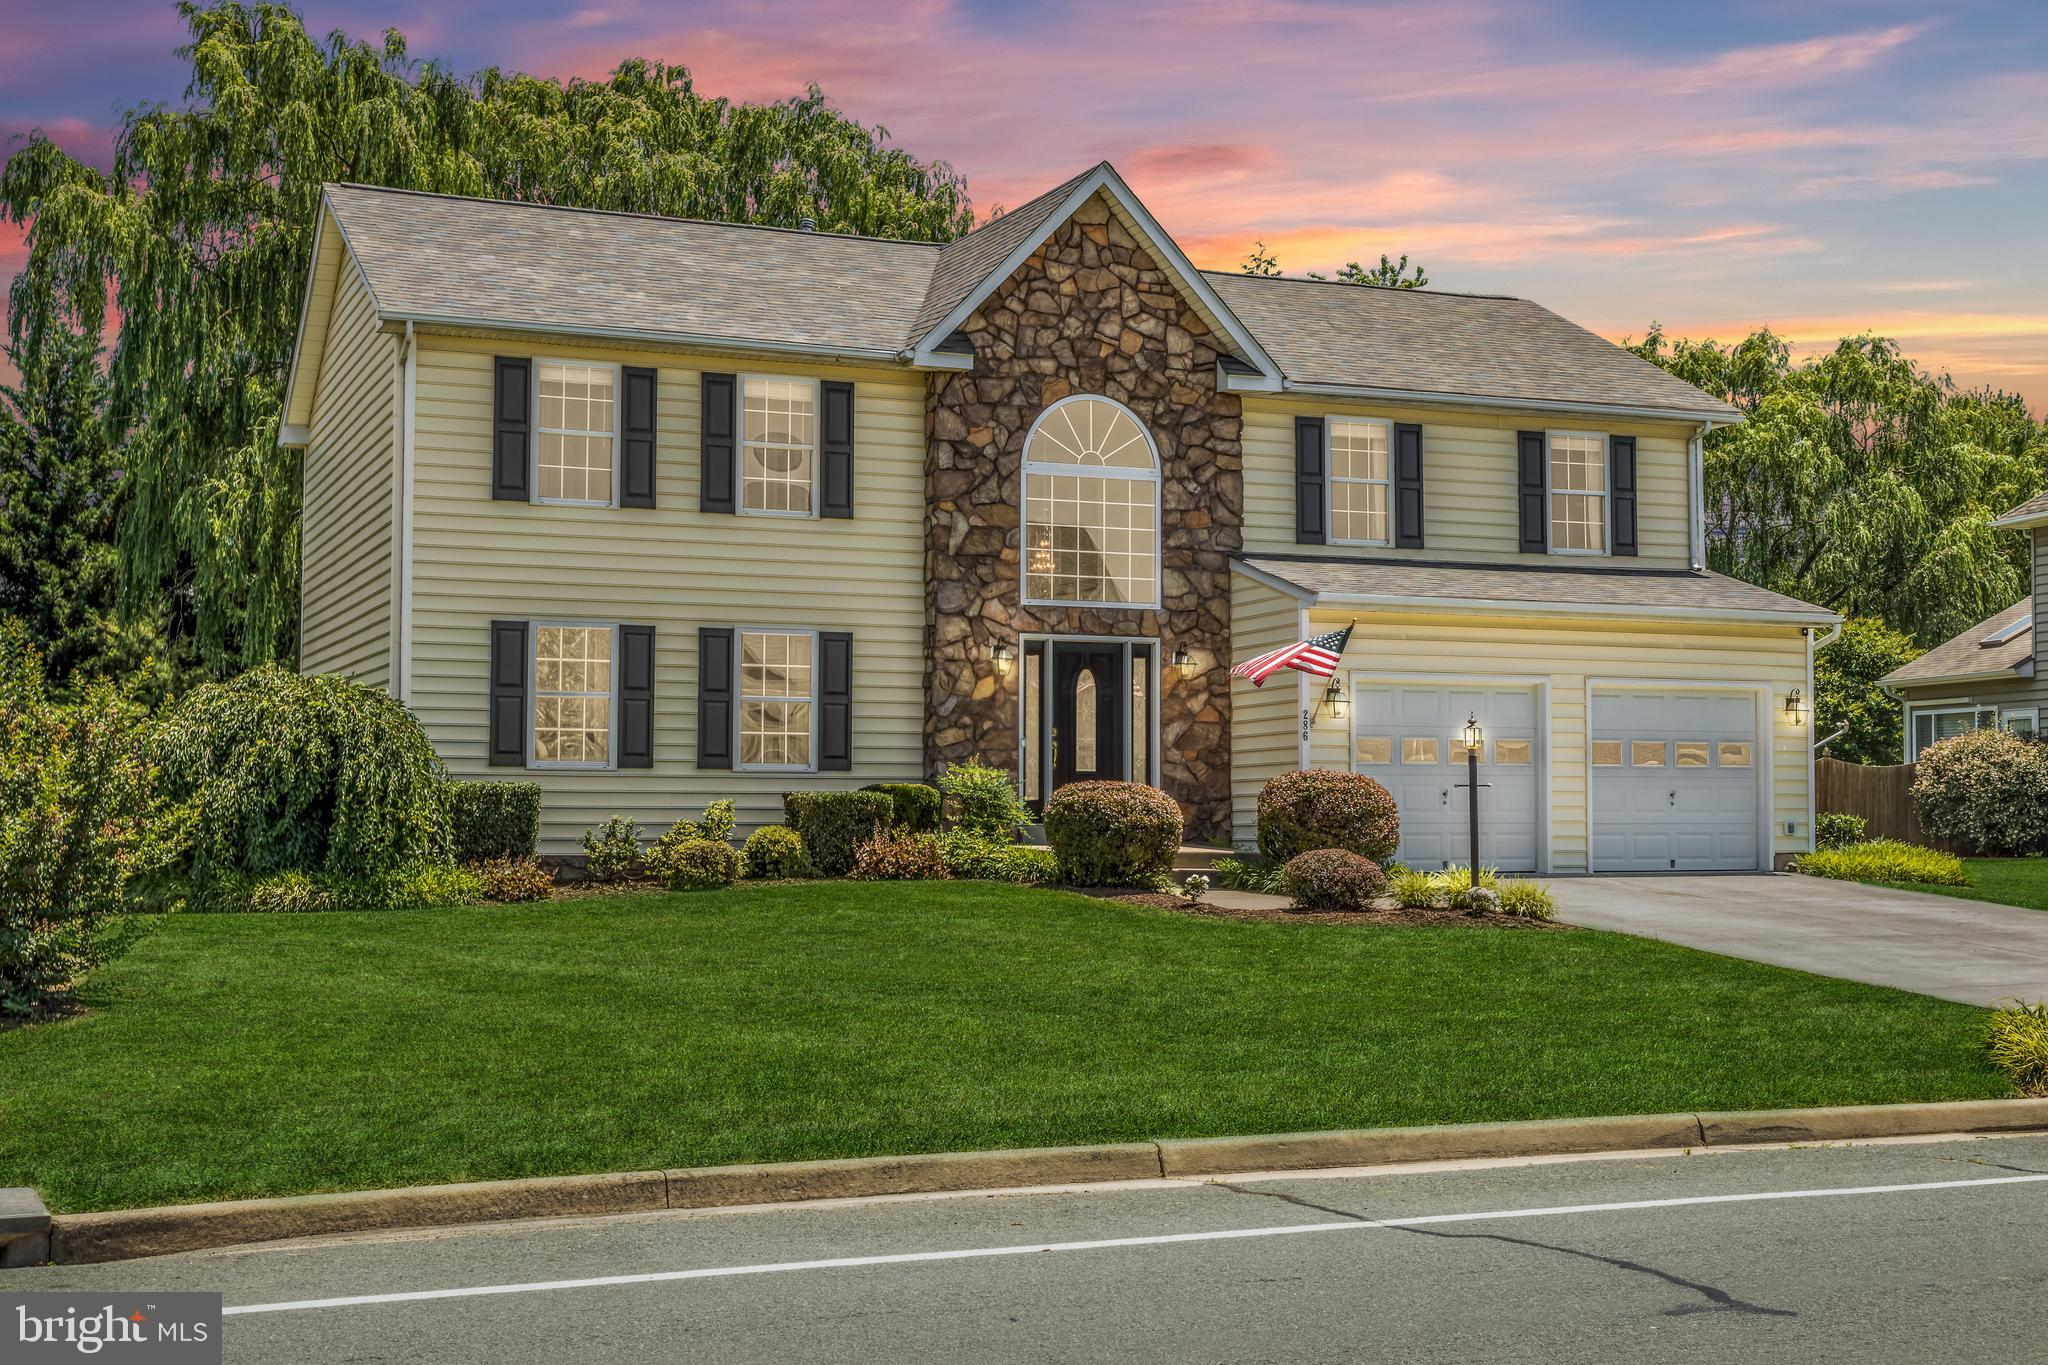 """Desirable OAKDALE CROSSING neighborhood in excellent commuter location with close proximity to downtown Winchester and Jim Barnett Park. No HOA!  Enjoy 3500+ finished square feet in this 4 Bedroom, 3.5 Bath home.   MAIN LEVEL:  As you enter, you are greeted with a 2-story Foyer, hardwood floors, light-filled windows, and an Open Floor Plan.  Enter into the Living Room (which boasts Crown Molding, Chair Railing, and Shadow Boxes) to a spacious Formal Dining Room-- to a Kitchen with Gas cook-top, wall oven, Corian countertops, 42"""" cabinets, stainless steel appliances, center Island, and breakfast area for meals. When entertaining/relaxing, move easily from Kitchen to the large stamped patio with Gazebo to the fully-fenced yard. Truly a private Sanctuary with lots of landscaping!  Family room with gas fireplace flows from Kitchen.    UPPER LEVEL: Huge Master suite boasts hardwood floors and a vaulted ceiling (complete with jetted soaking tub, separate shower, double vanities, Walk-In closet).  3 additional good-sized Bedrooms, full bath and laundry area are also conveniently located on upper level.   LOWER LEVEL:  Finished basement  can be used for recreational room.  Separate room with closet may be used for a home office or gym. Bathroom with tiled shower.  Unfinished storage area.   2-Car attached Garage   New Roof 2017 All measurements are approximate. Owner/Agent THE OPEN FLOOR PLAN AND PRIVATE BACKYARD IS IDEAL FOR RELAXATION, ENTERTAINING, AND ENJOYMENT!! PLEASE REMOVE SHOES"""